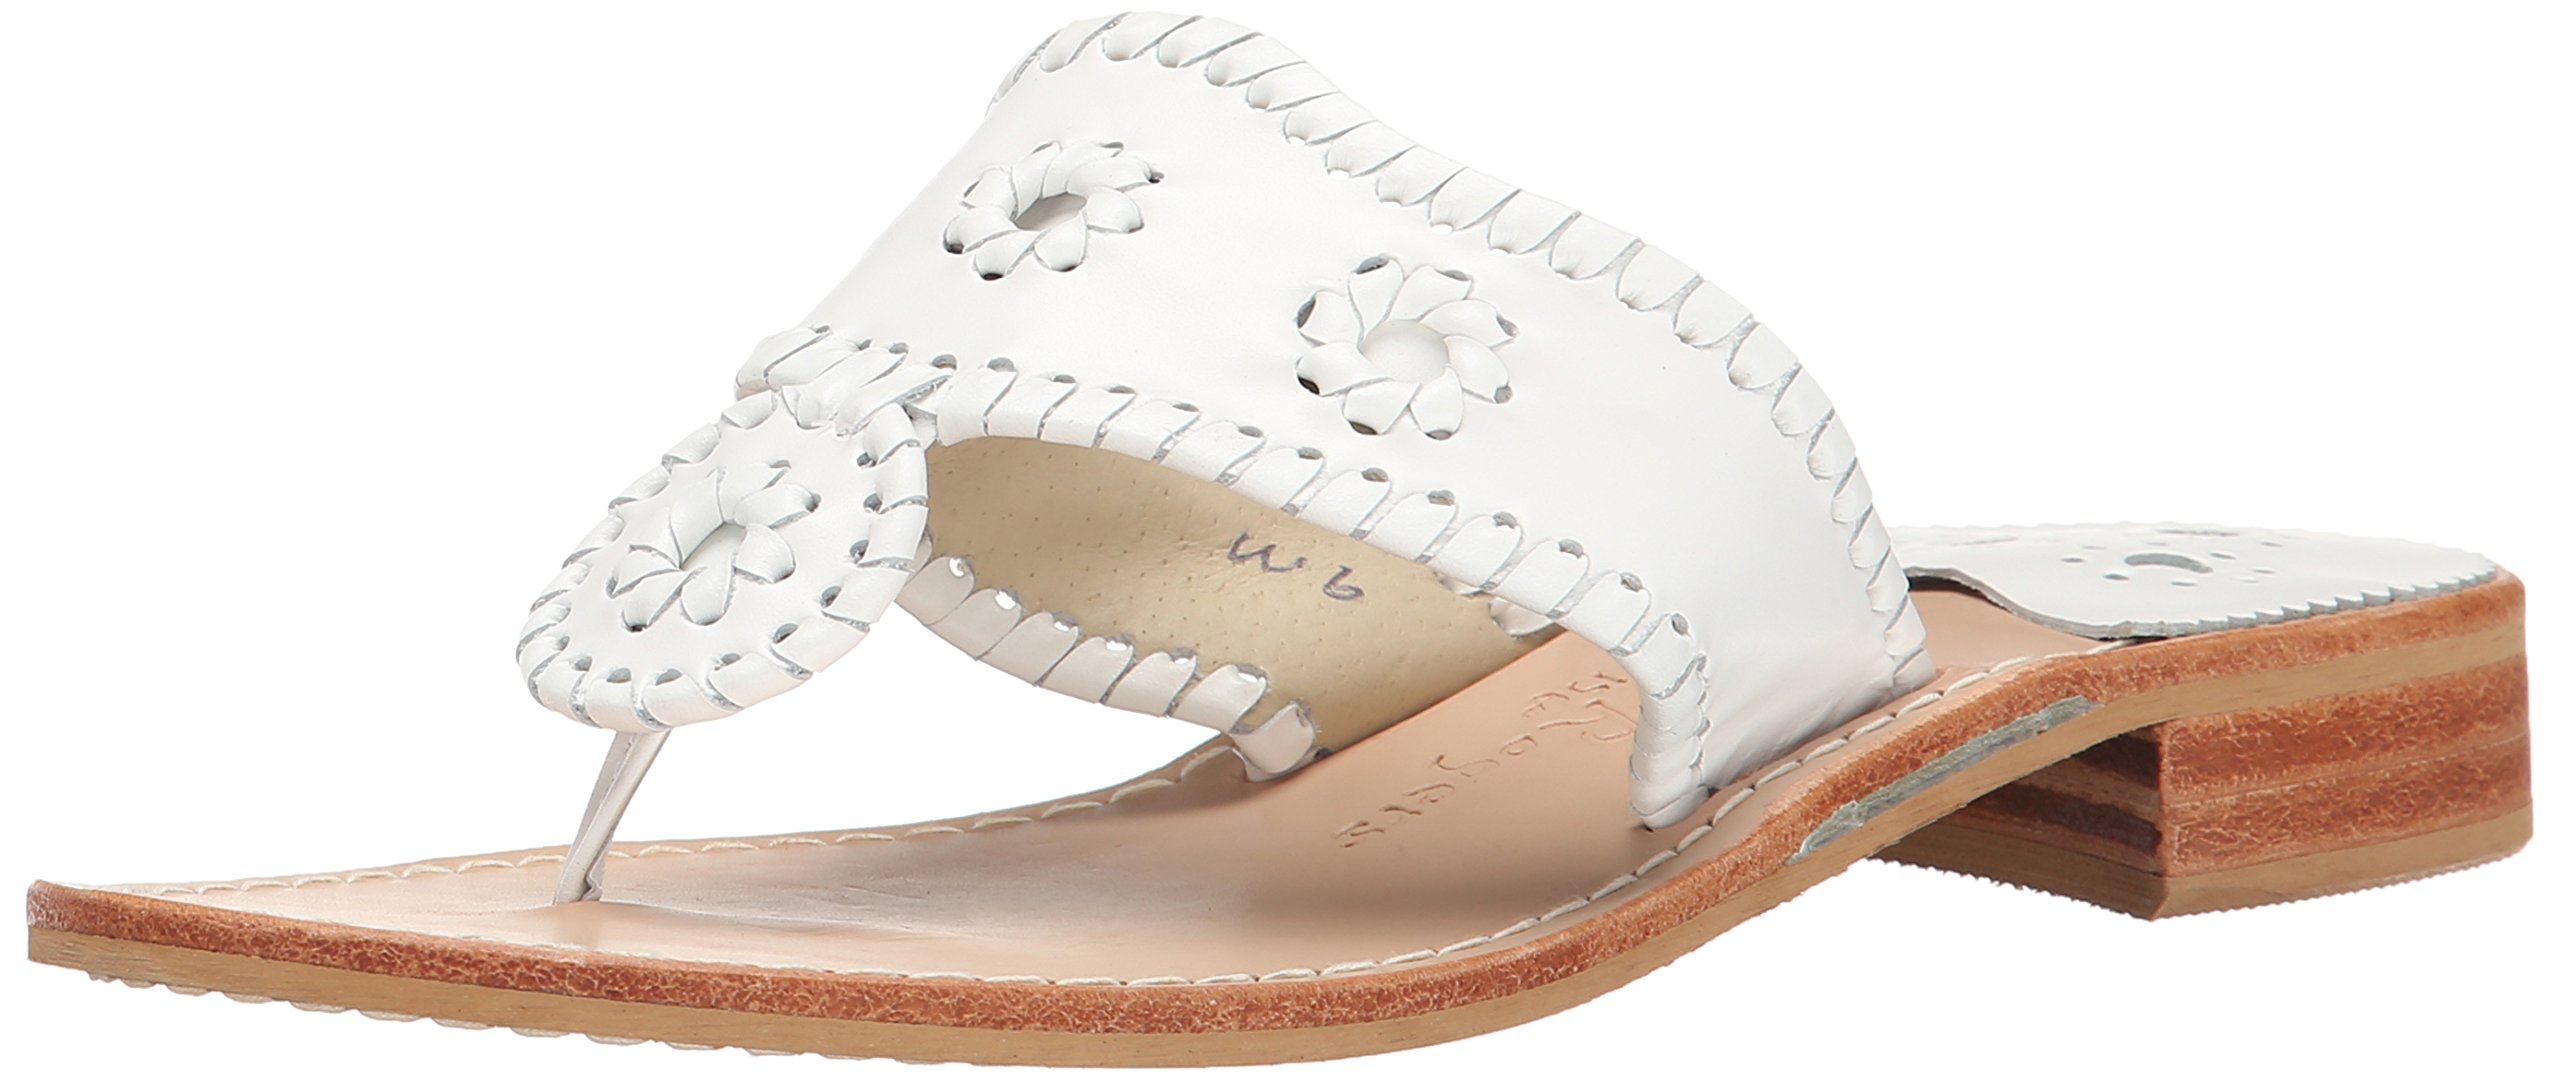 Jack Rogers Women's Palm Beach Navajo Classic Sandal,White,8 M by Jack Rogers